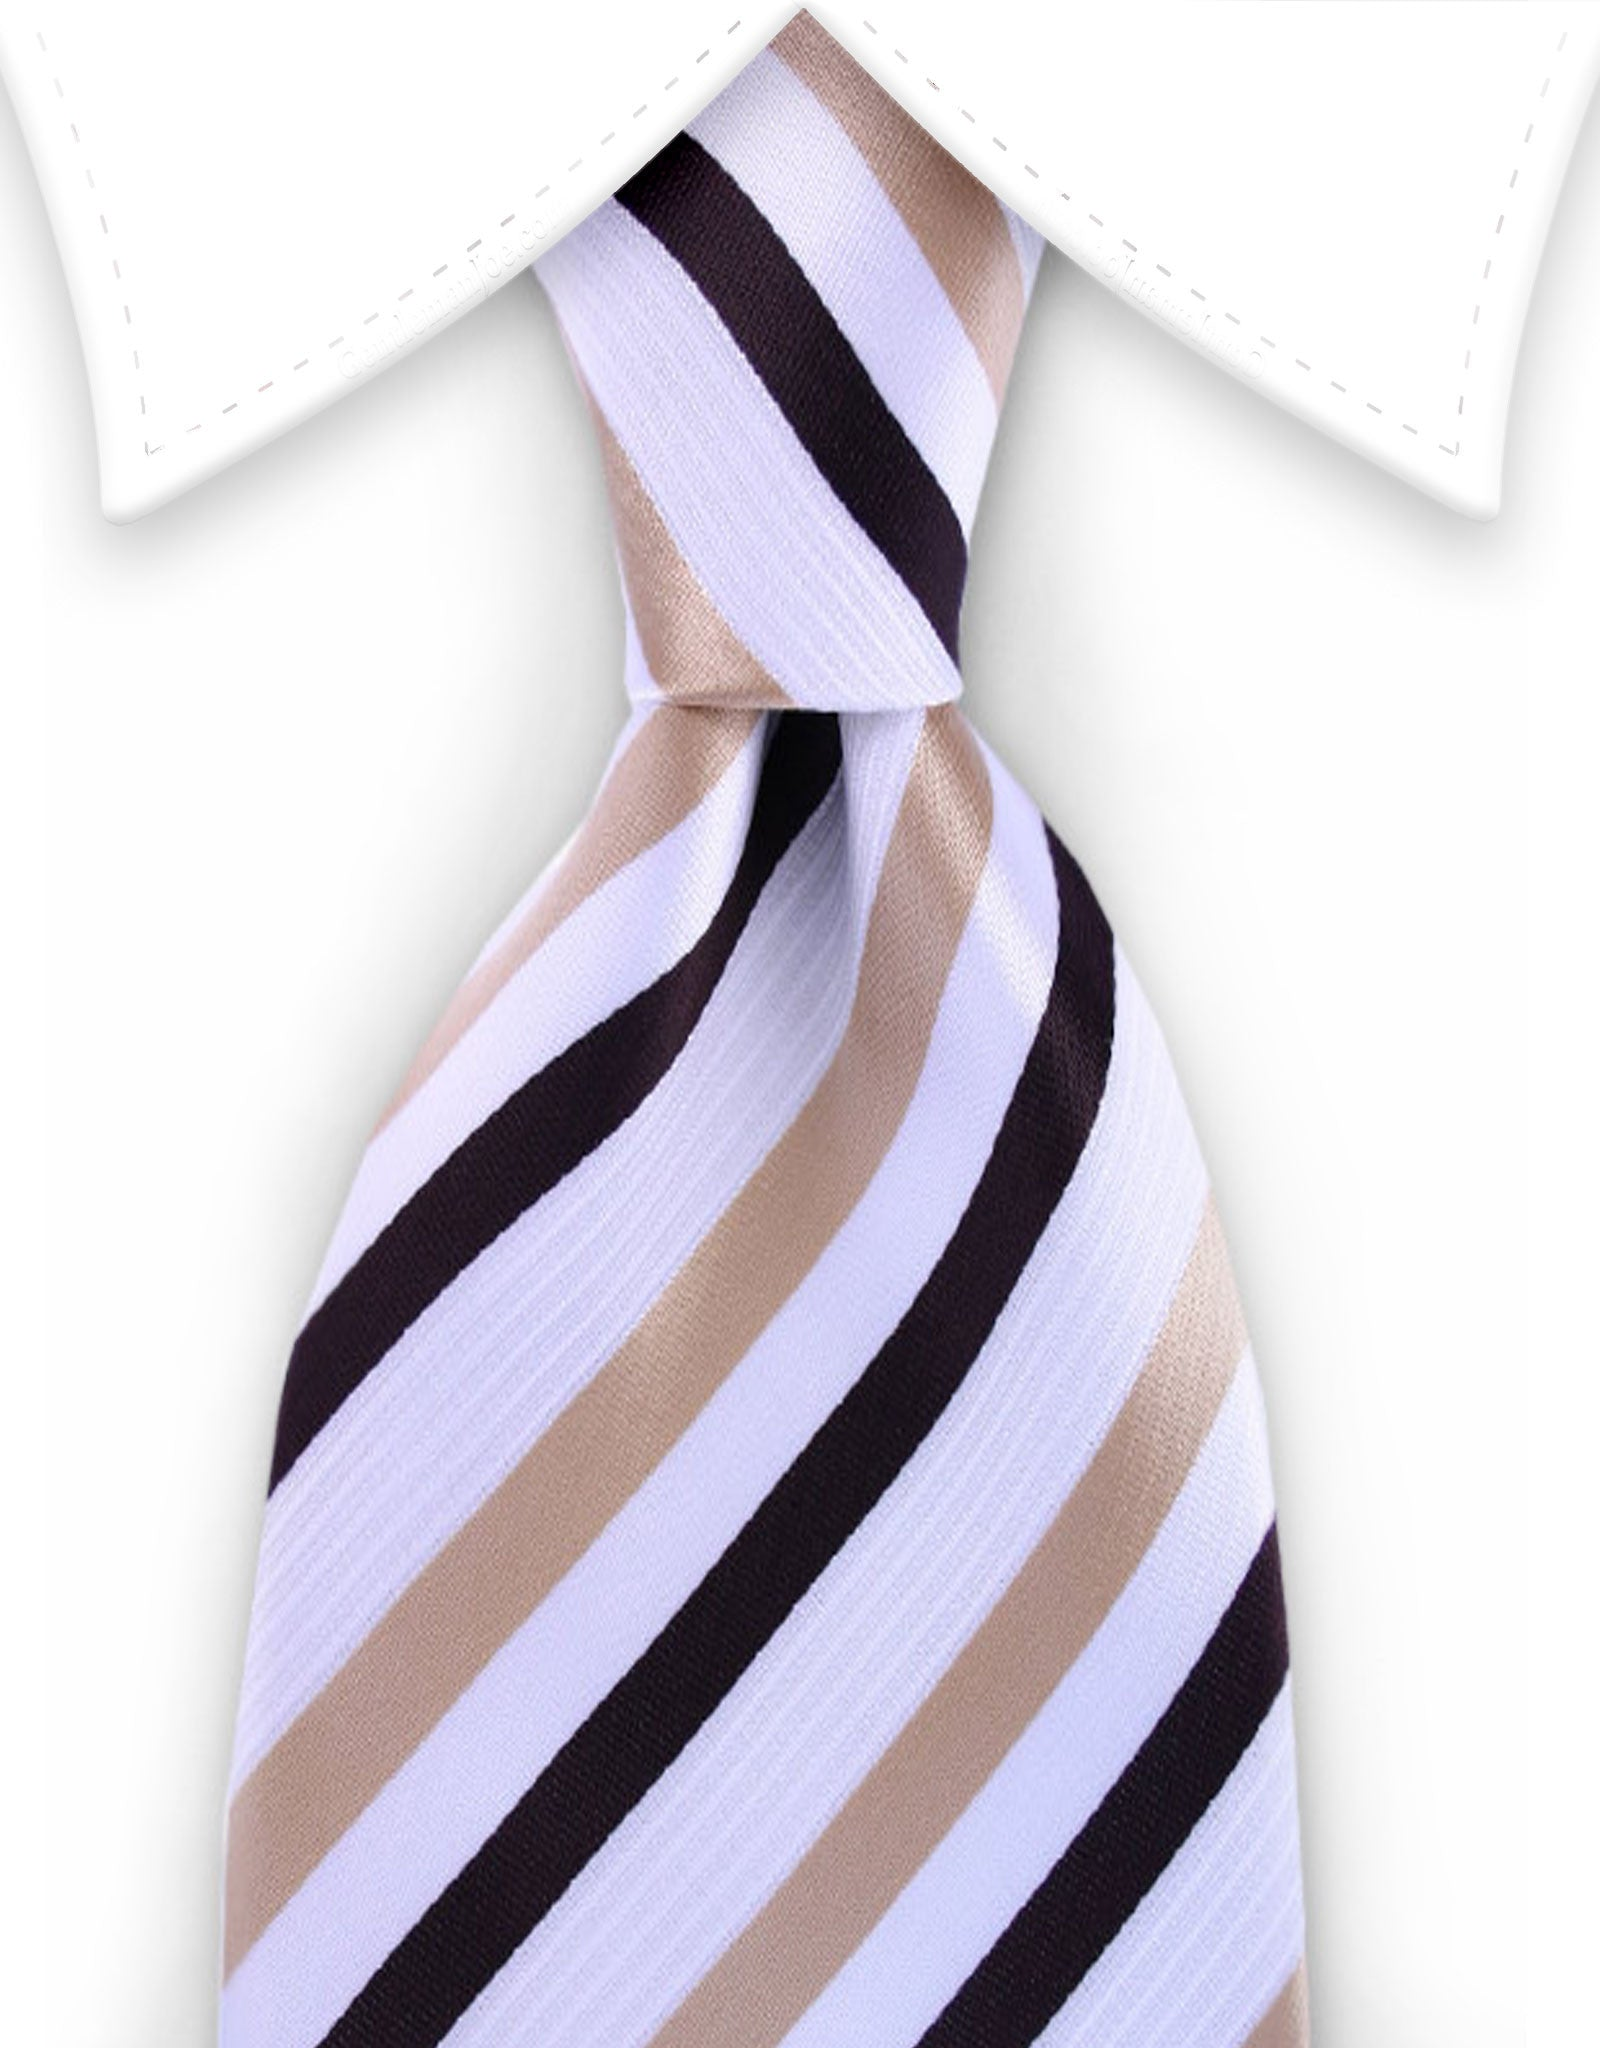 Light and Dark Brown Striped Tie on White